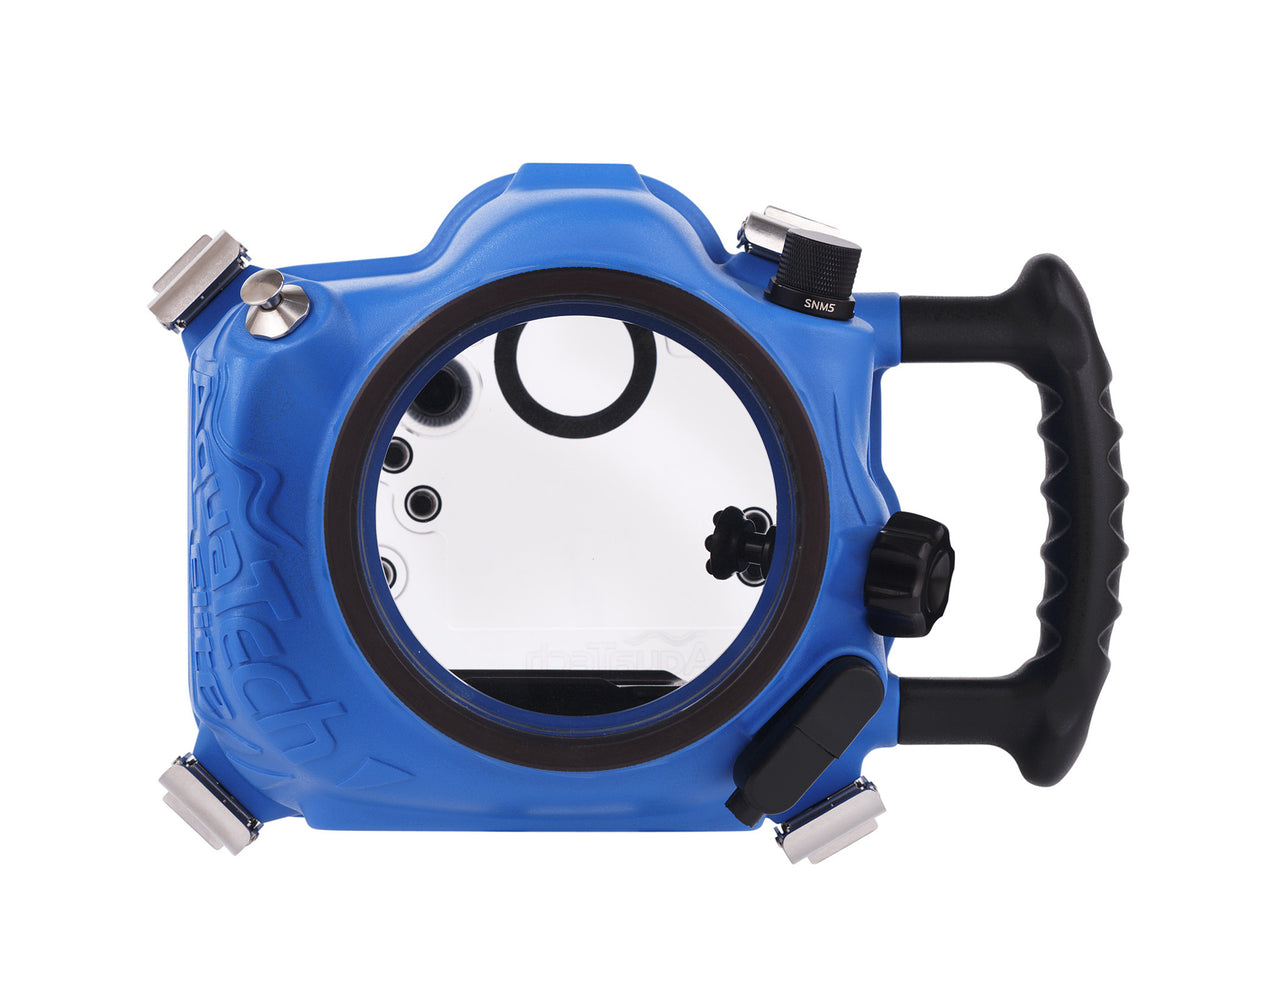 Elite 7D2 Canon Water Housing product shot front view